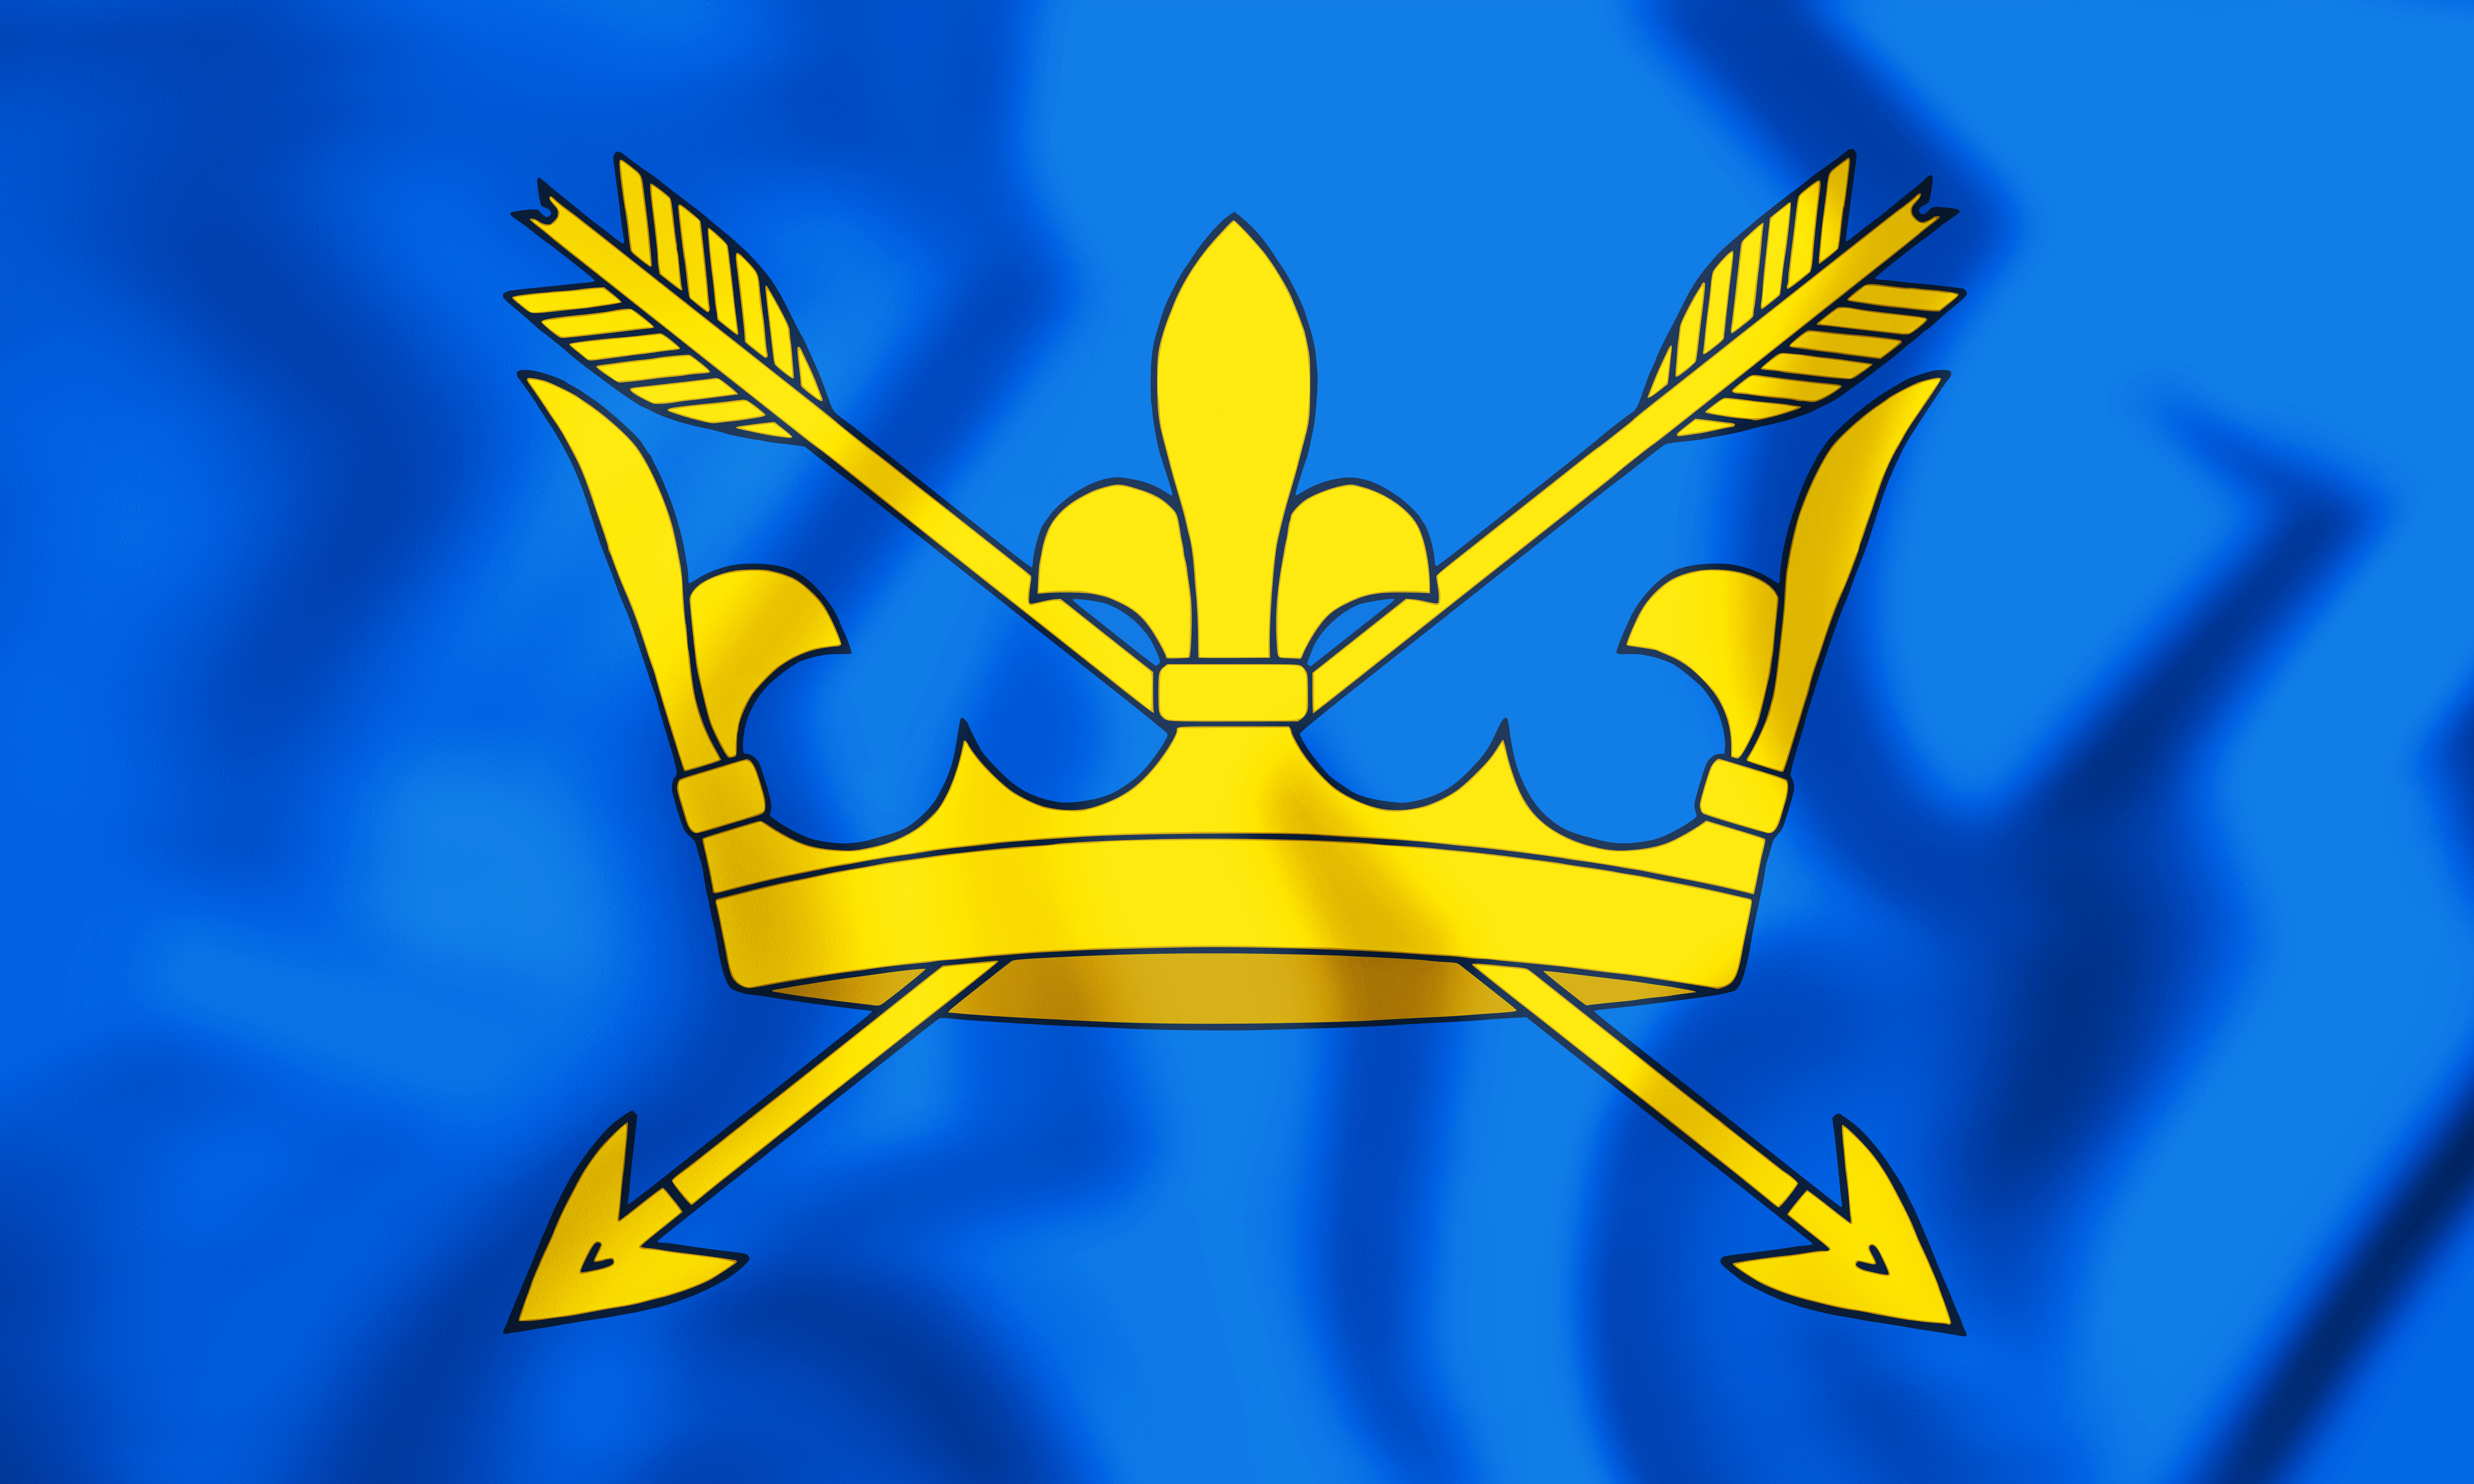 The flag of Suffolk is a gold crown with two golden arrows crossing it, on a royal blue background. Eastern Fostering Services hold regular fostering events in Suffolk.